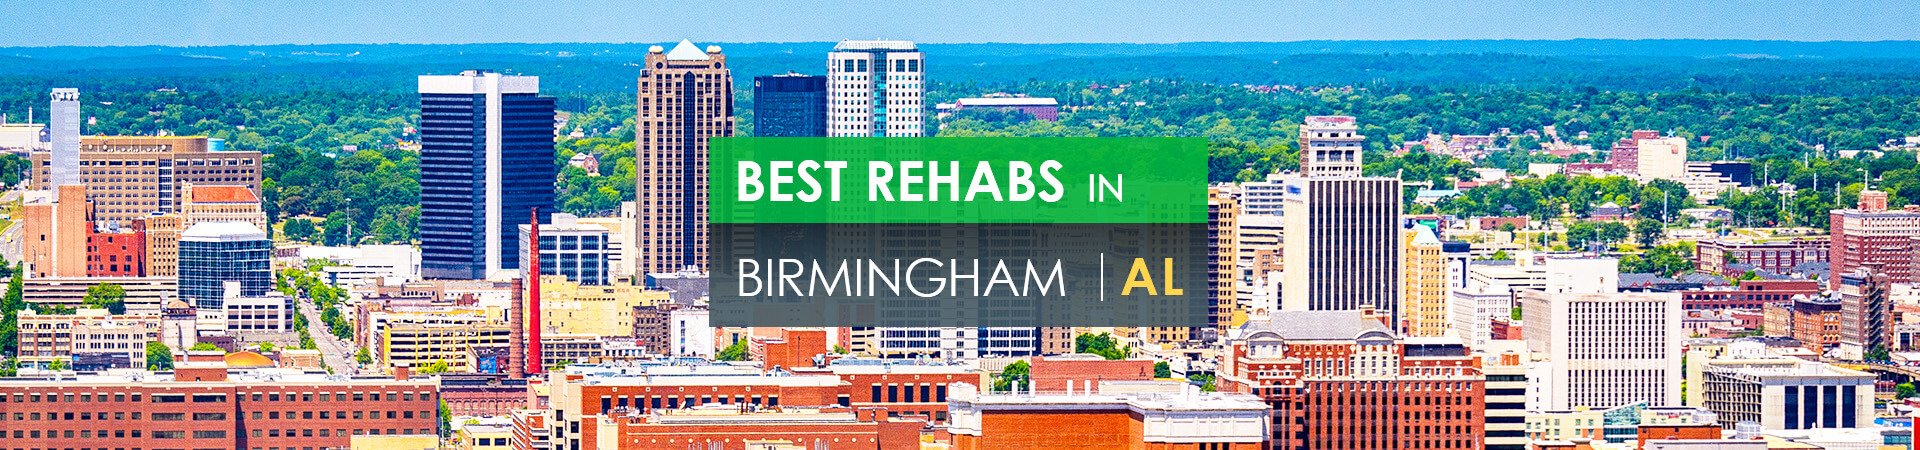 Best rehabs in Birmingham, AL